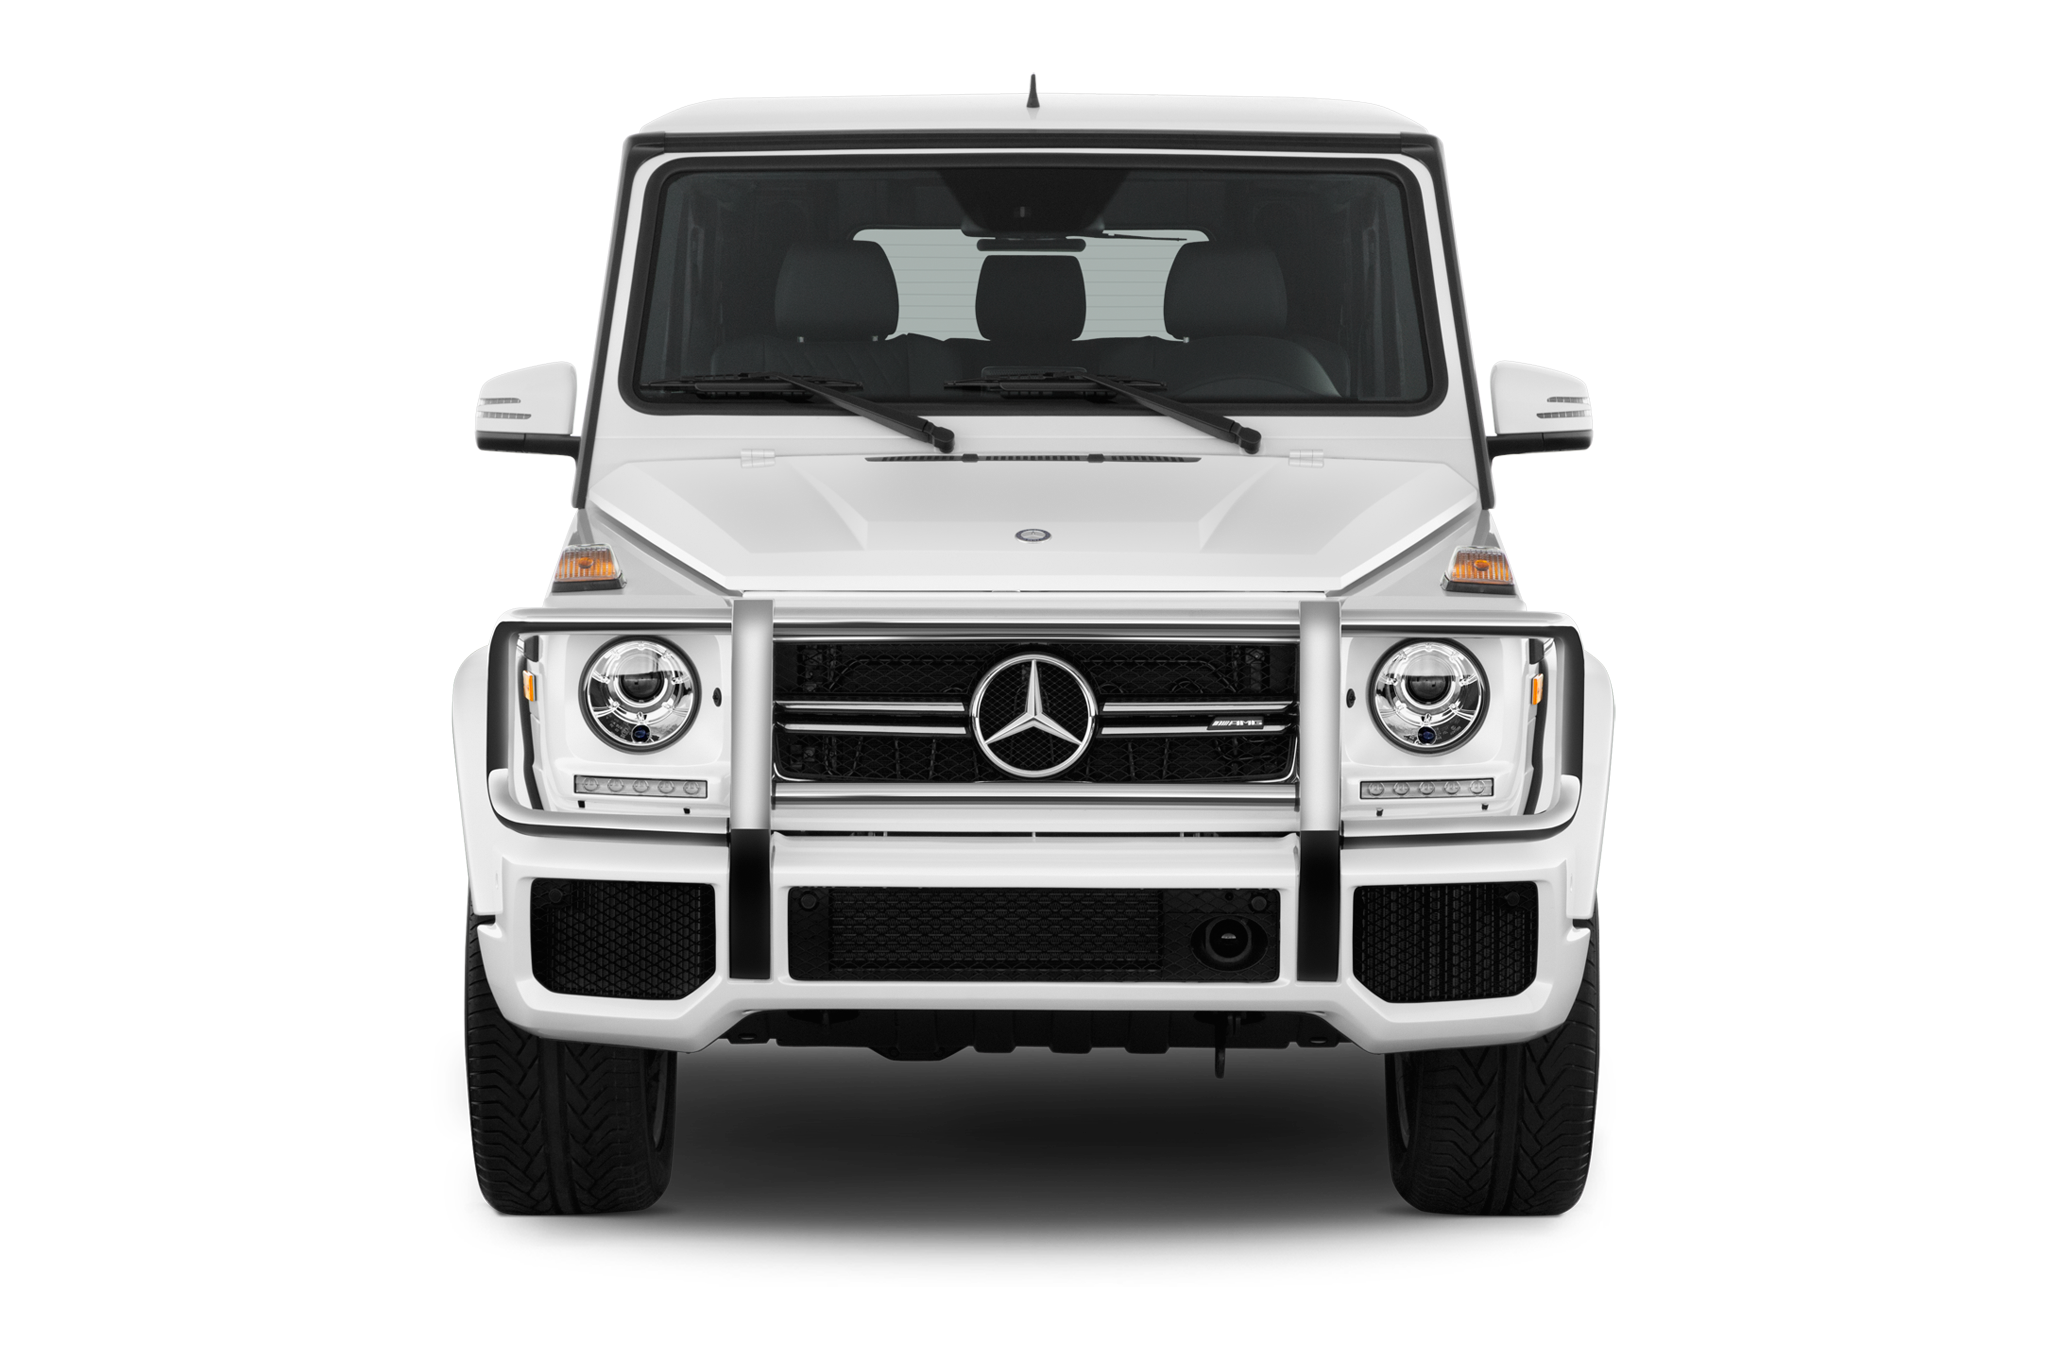 Mercedes benz g63 amg suv price galleria di automobili for Mercedes benz amg suv price